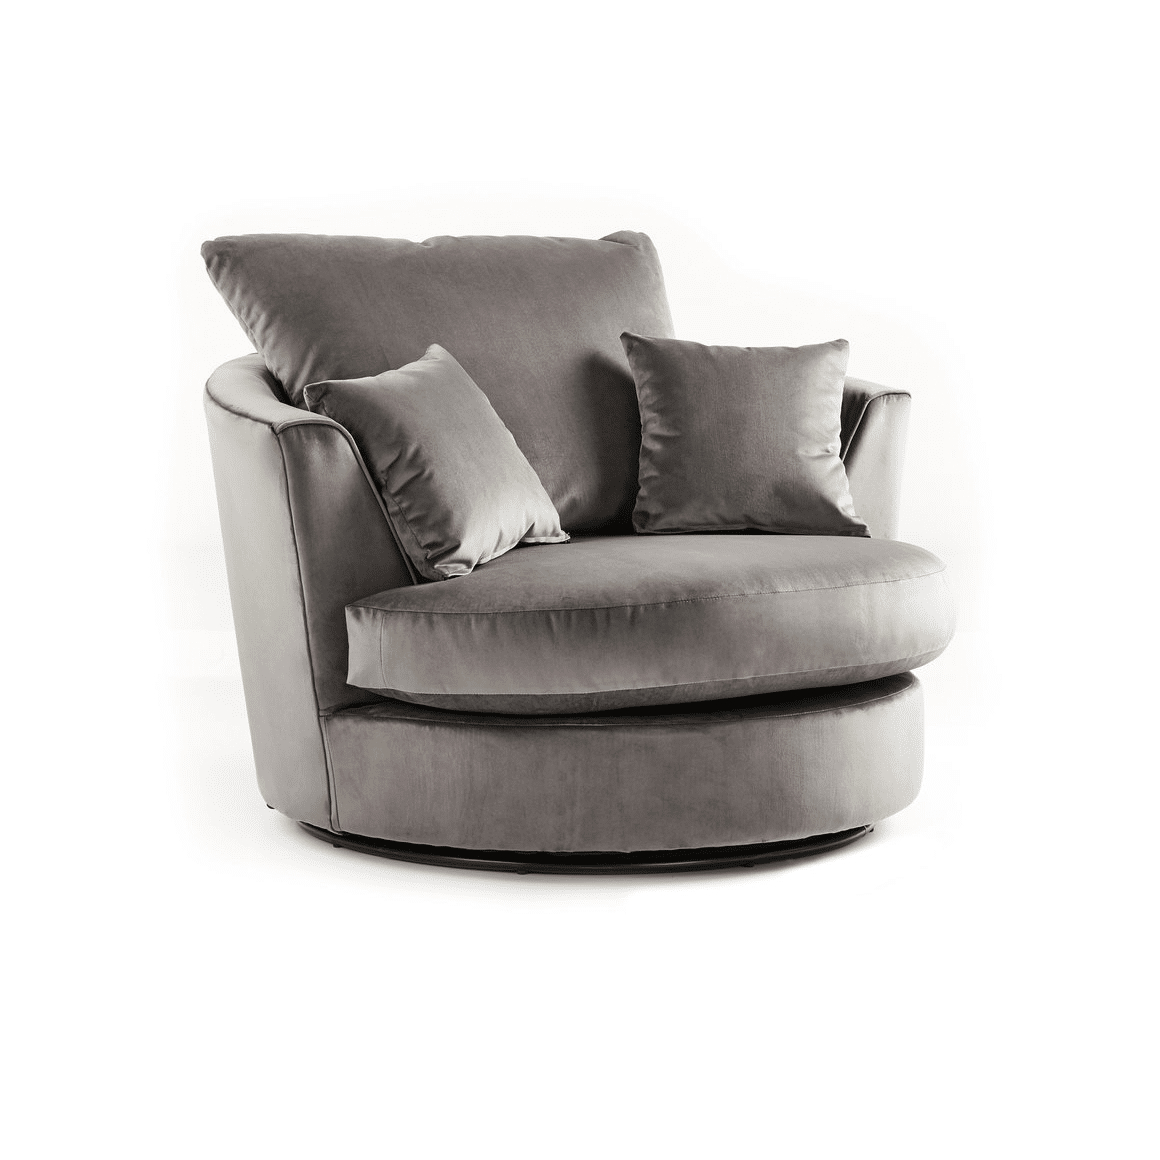 Crushed Velvet Furniture | Sofas, Beds, Chairs, Cushions Intended For Charcoal Swivel Chairs (View 3 of 25)